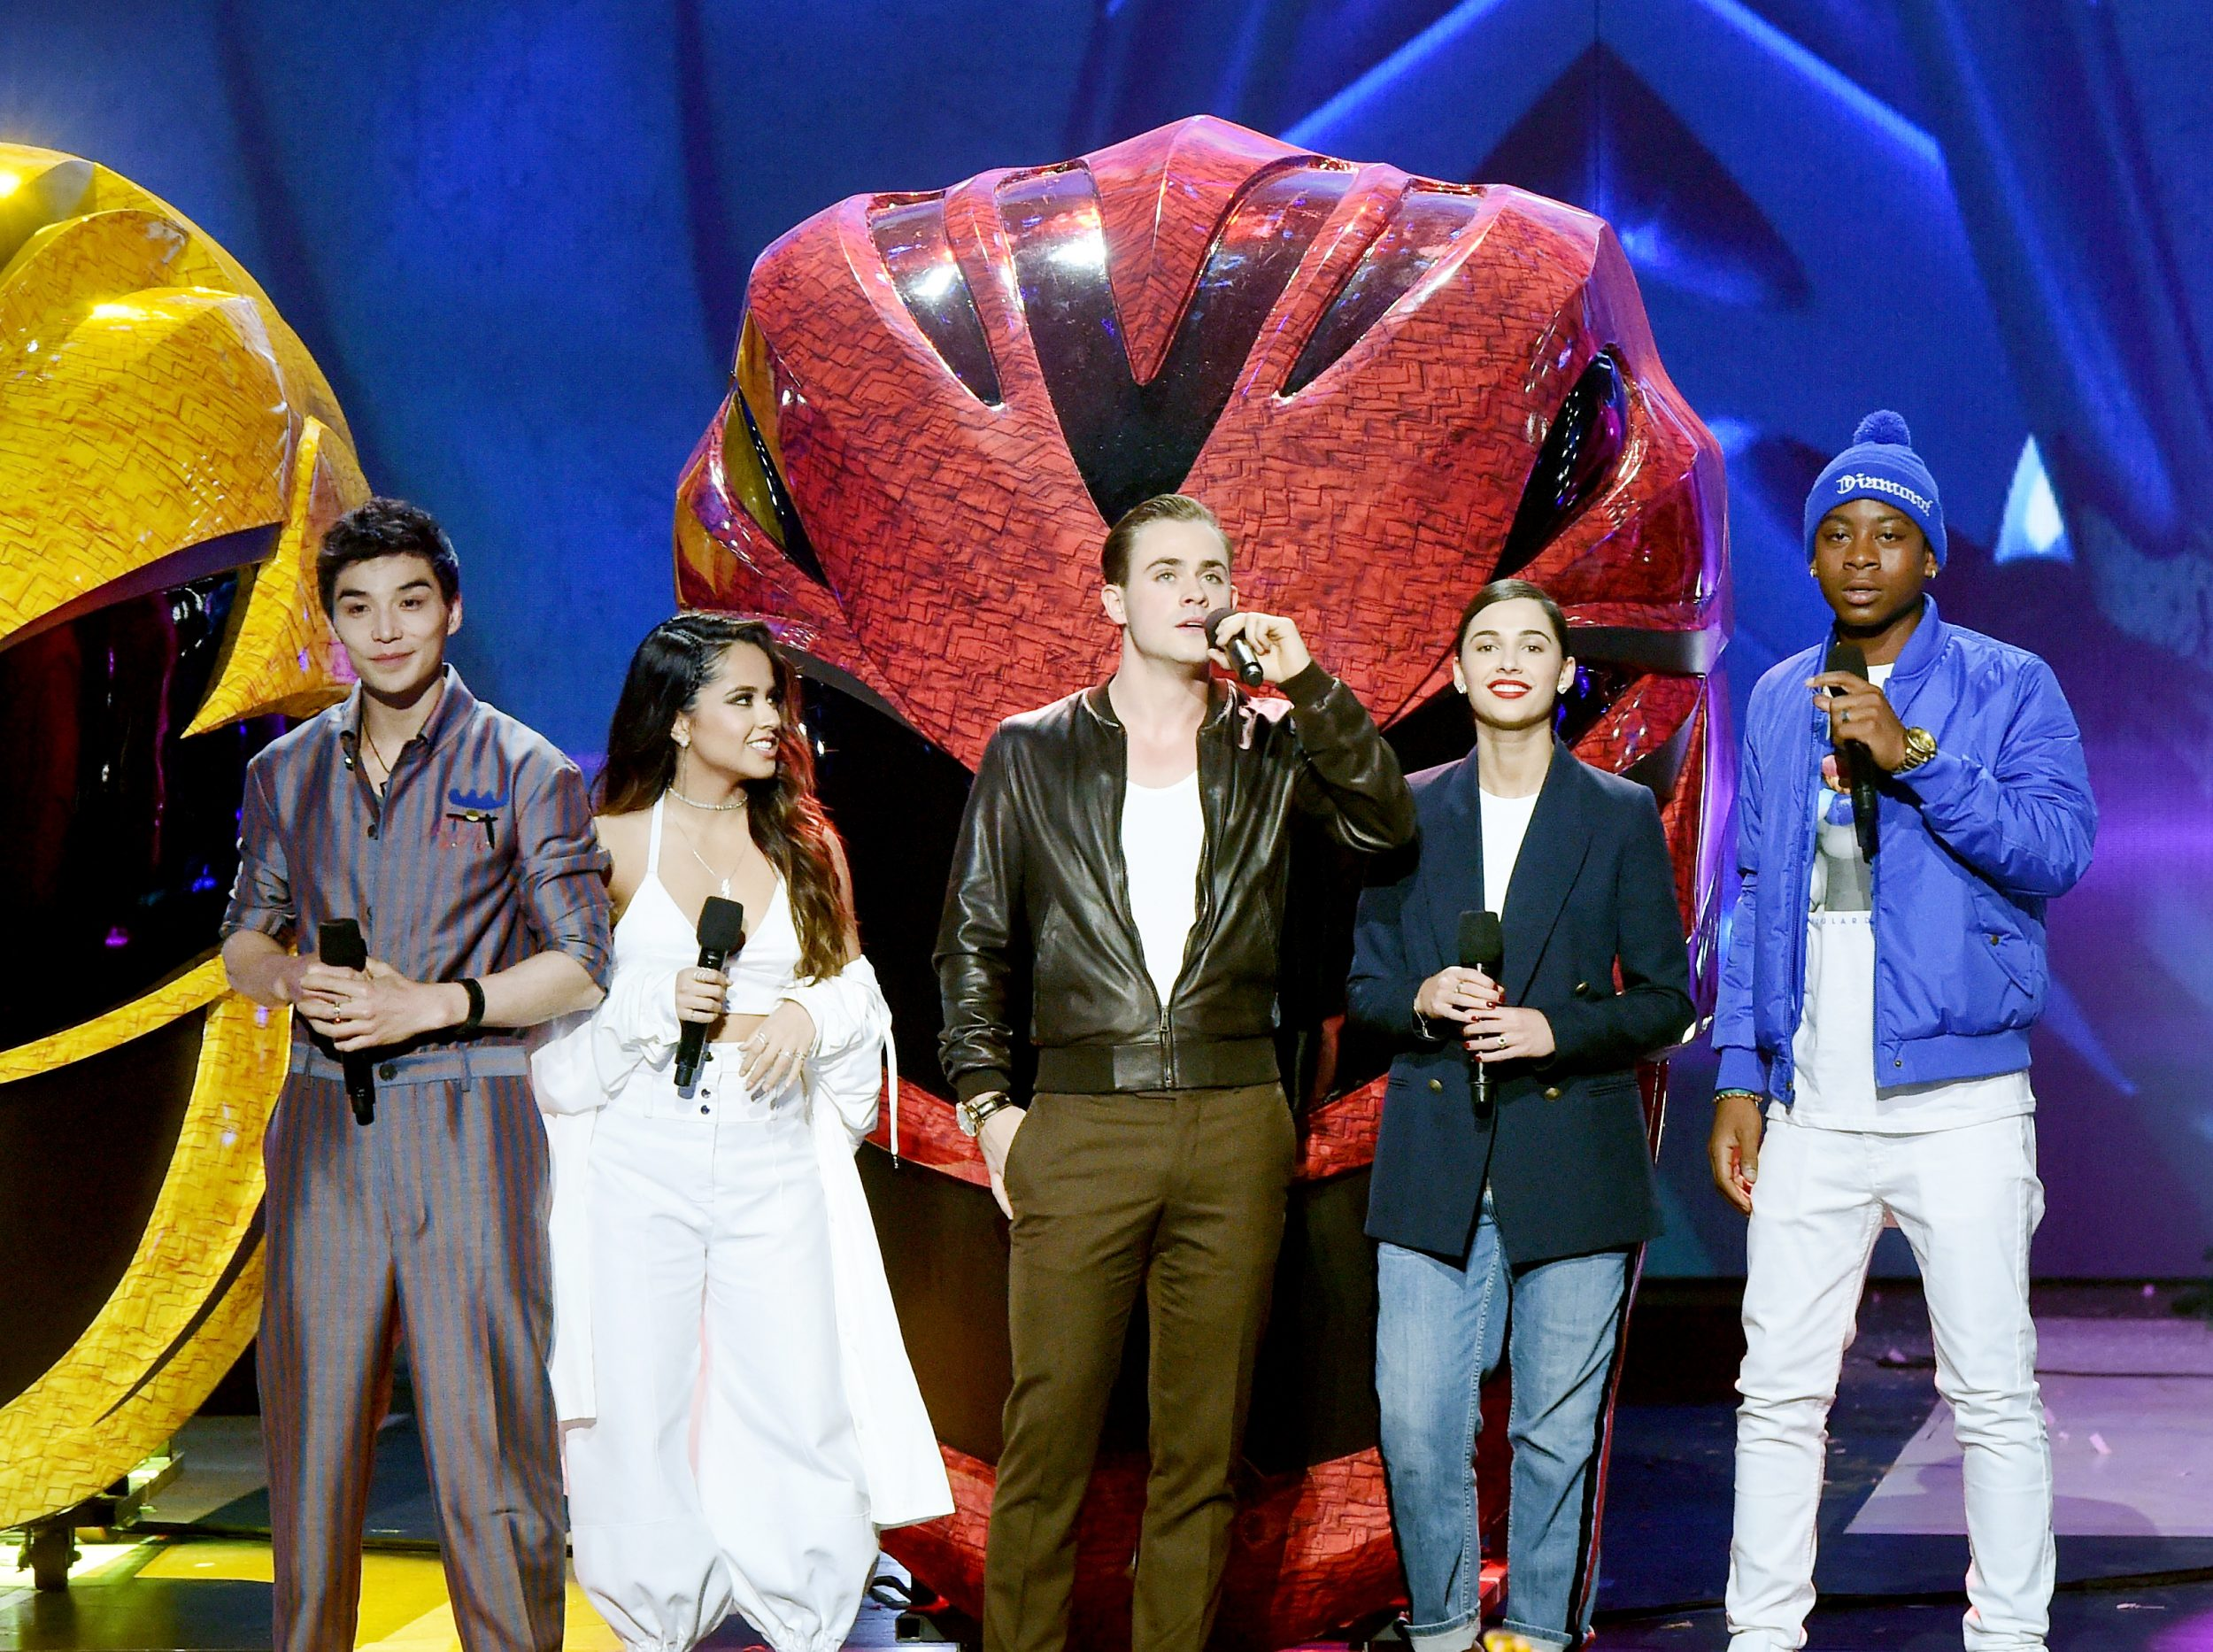 LOS ANGELES, CA - MARCH 11:  The cast of Power Rangers speak onstage at Nickelodeon's 2017 Kids' Choice Awards at USC Galen Center on March 11, 2017 in Los Angeles, California.  (Photo by Kevin Winter/Getty Images - Issued to Media by Nickelodeon)